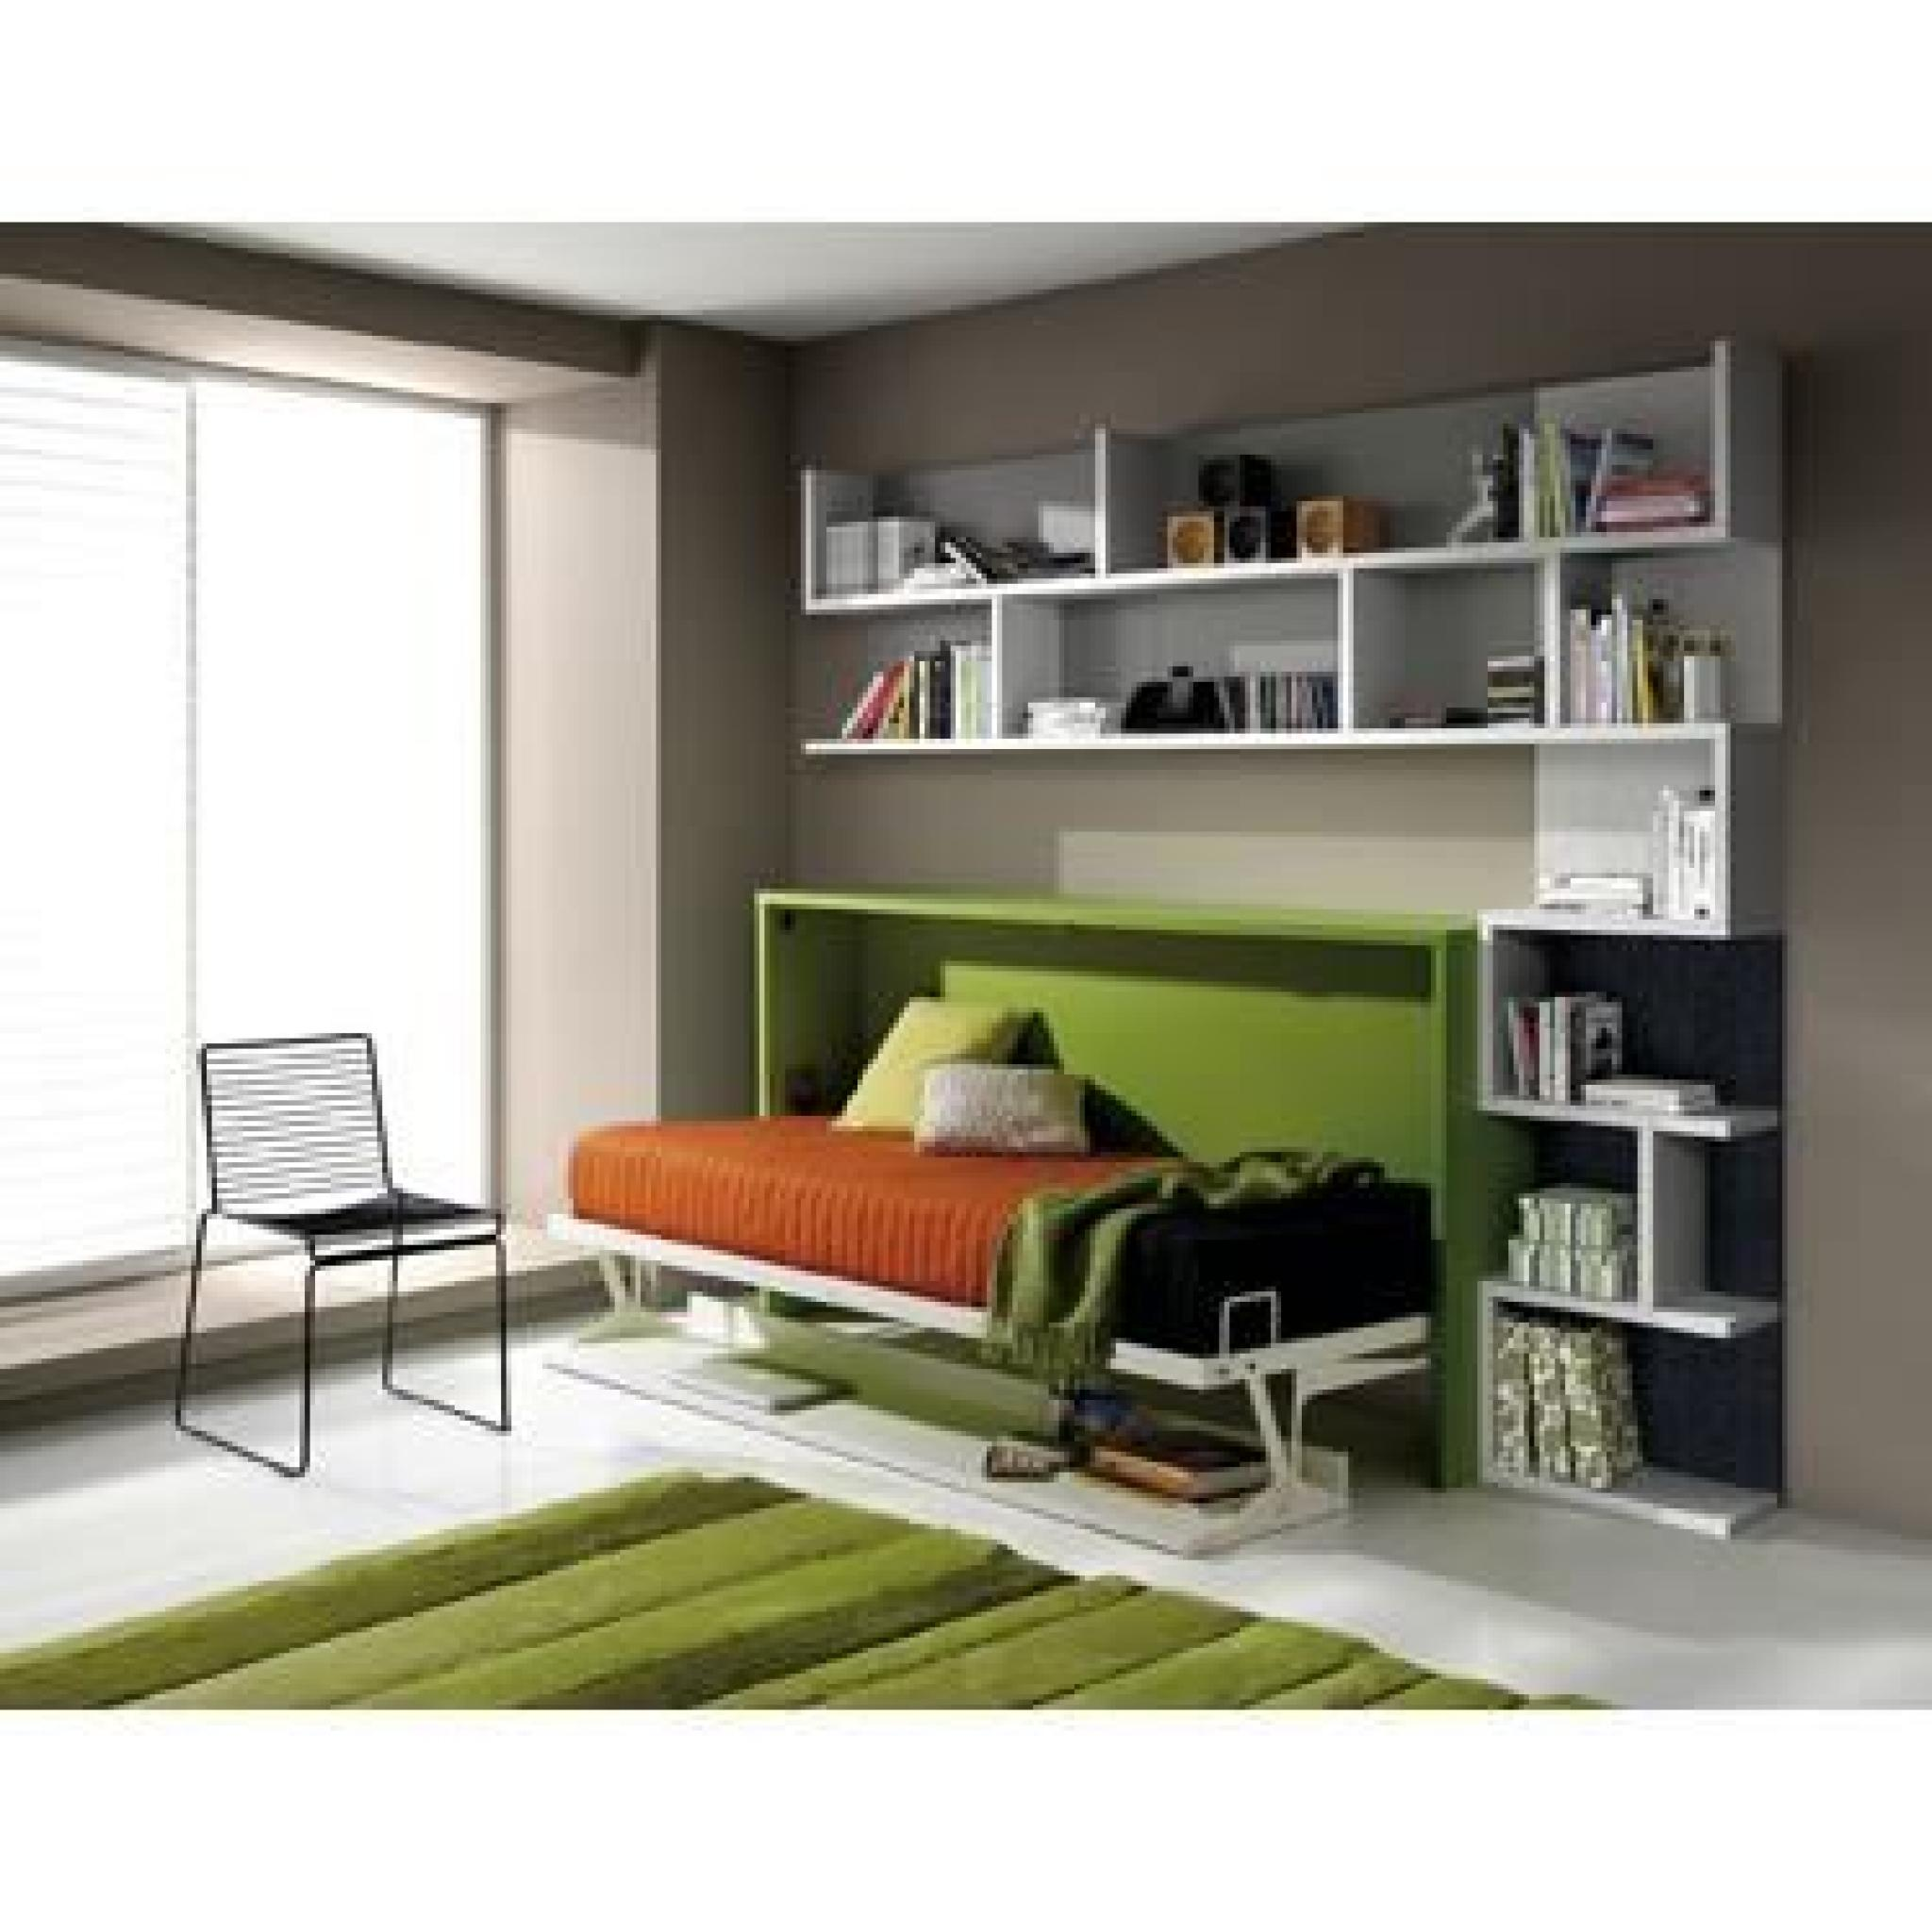 armoire lit escamotable fleet avec bureau 90x190cm achat vente lit escamotable pas cher. Black Bedroom Furniture Sets. Home Design Ideas